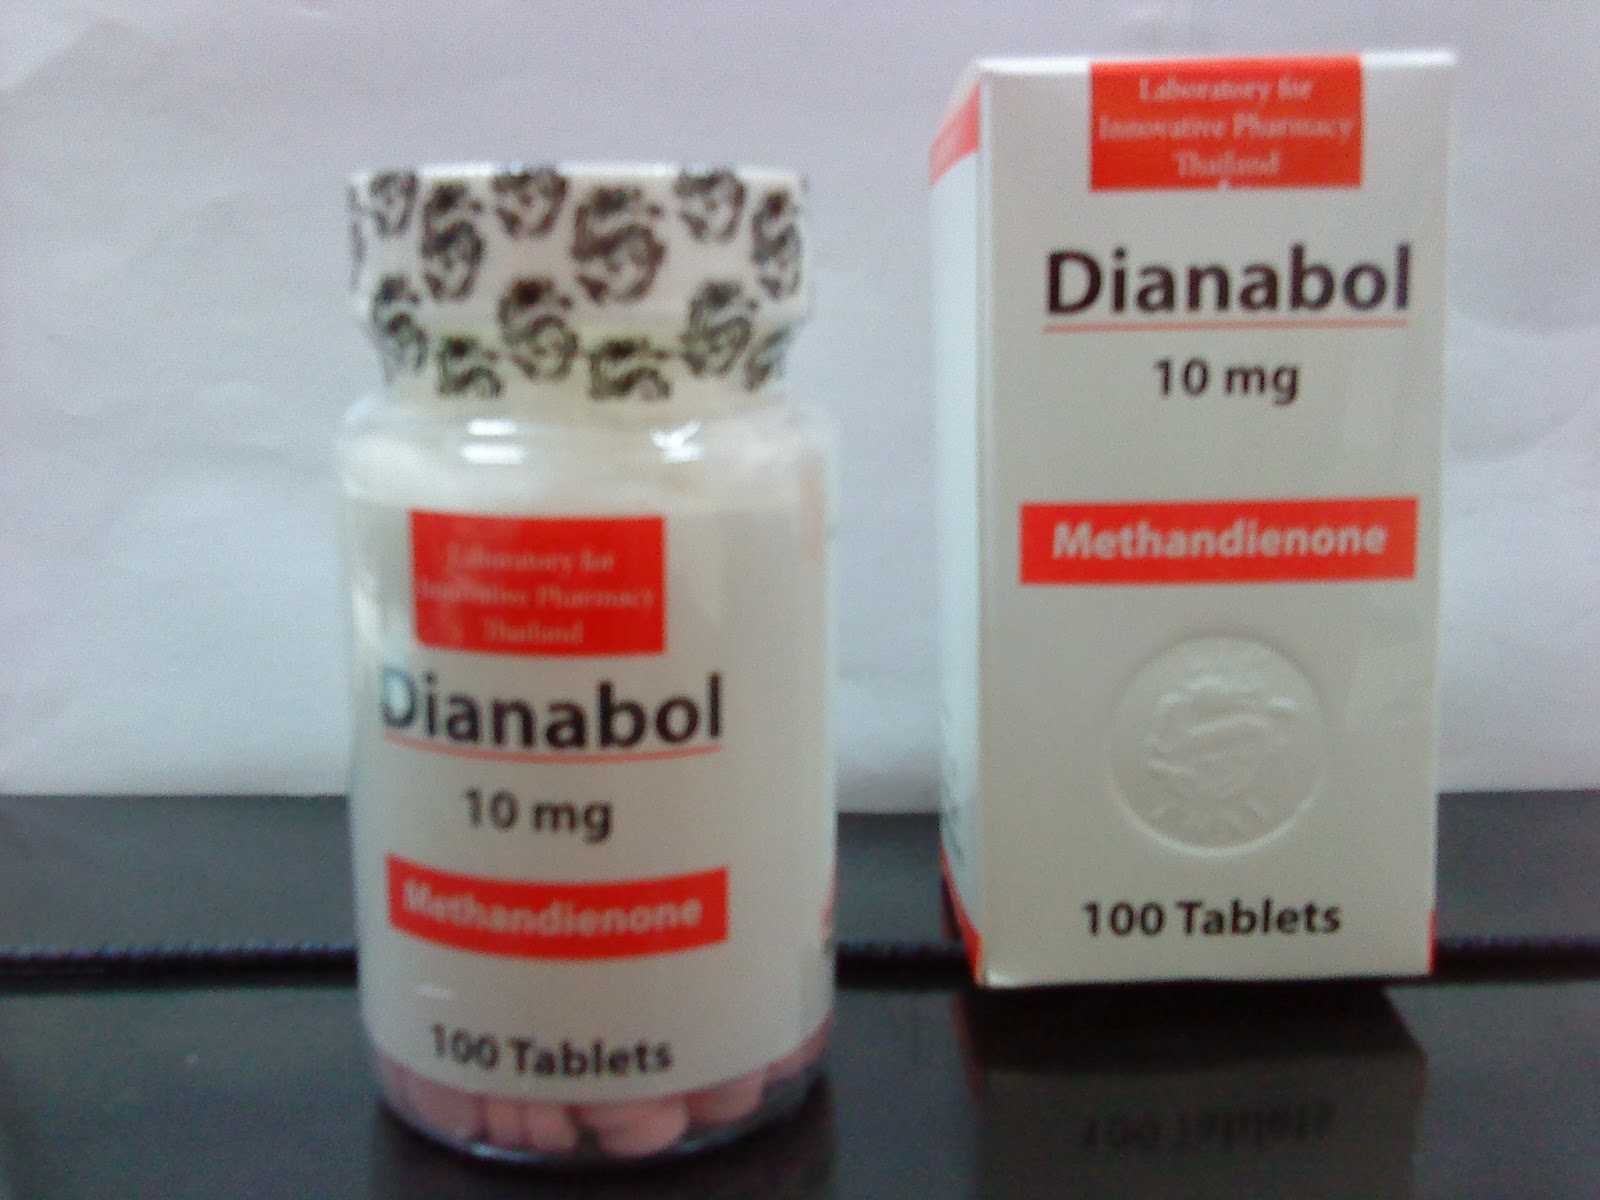 dianabol 10mg tablets review